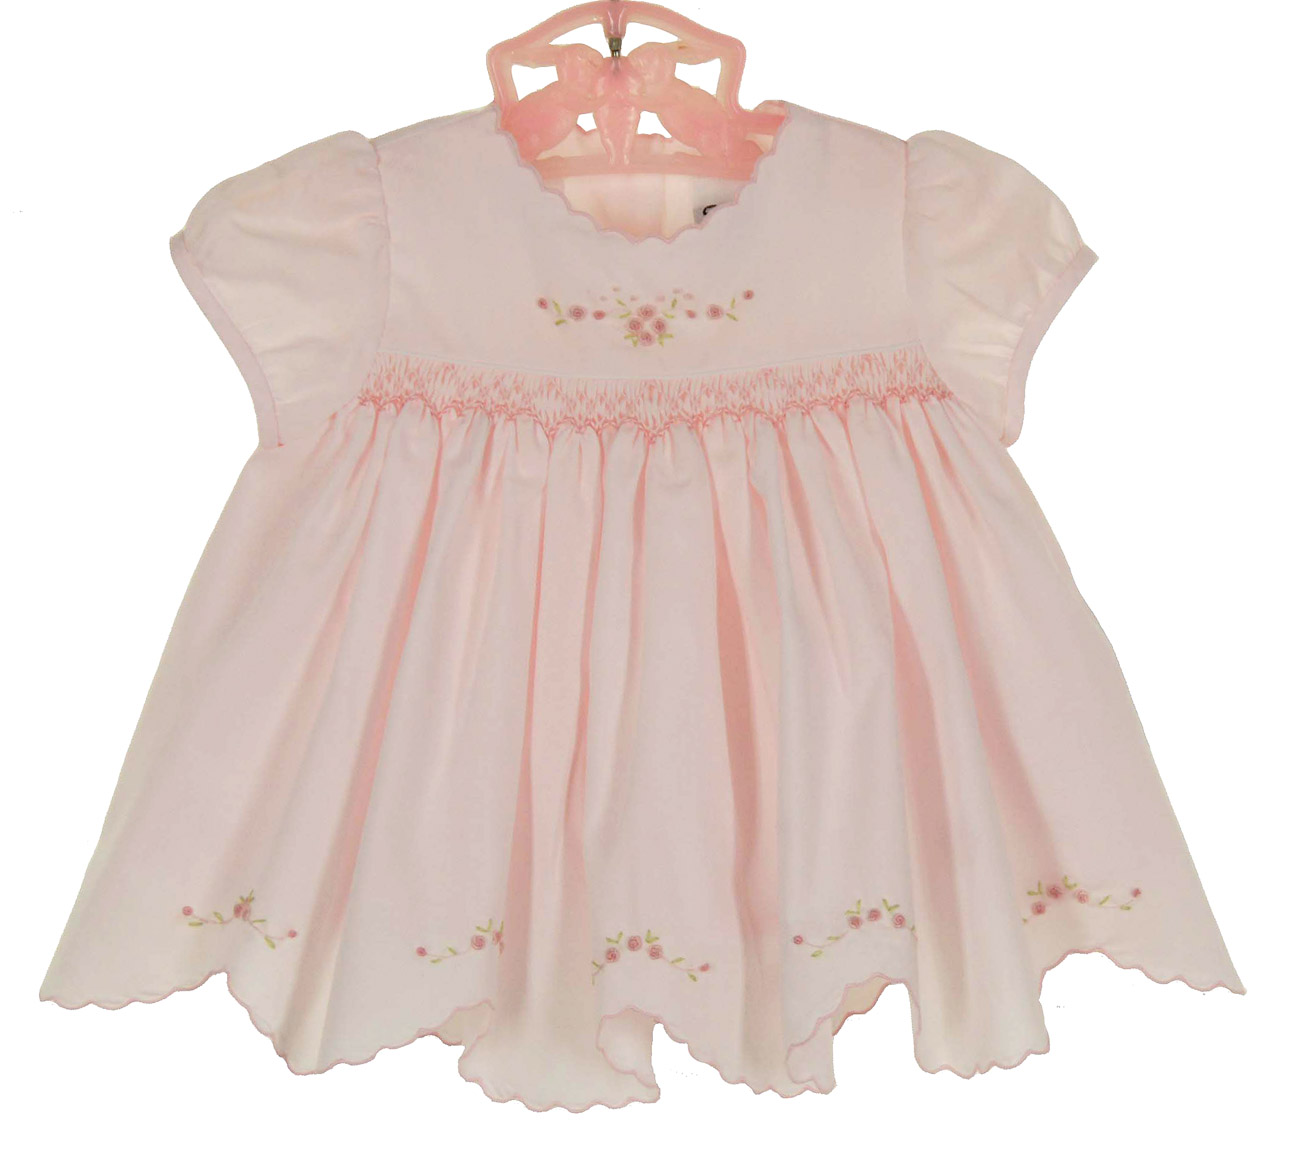 NEW Sarah Louise Pink Smocked Dress and Diaper Cover with Embroidered Pink  Rosebuds and Scalloped Hem 1167bfb2c7